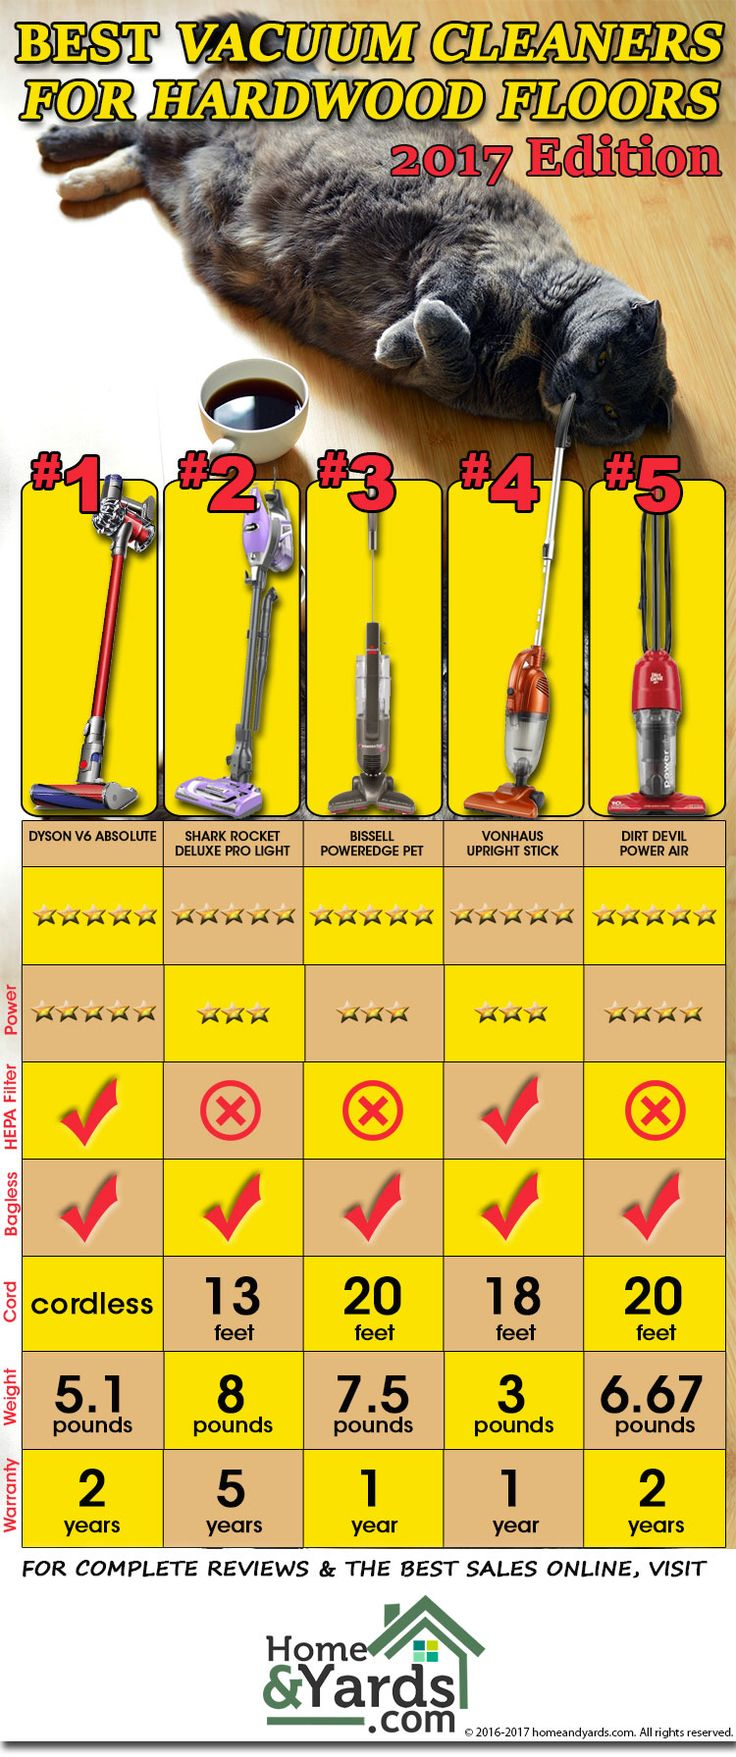 2017 best vacuum cleaners for hardwood floors infographic - Top 5 Vacuum Cleaners